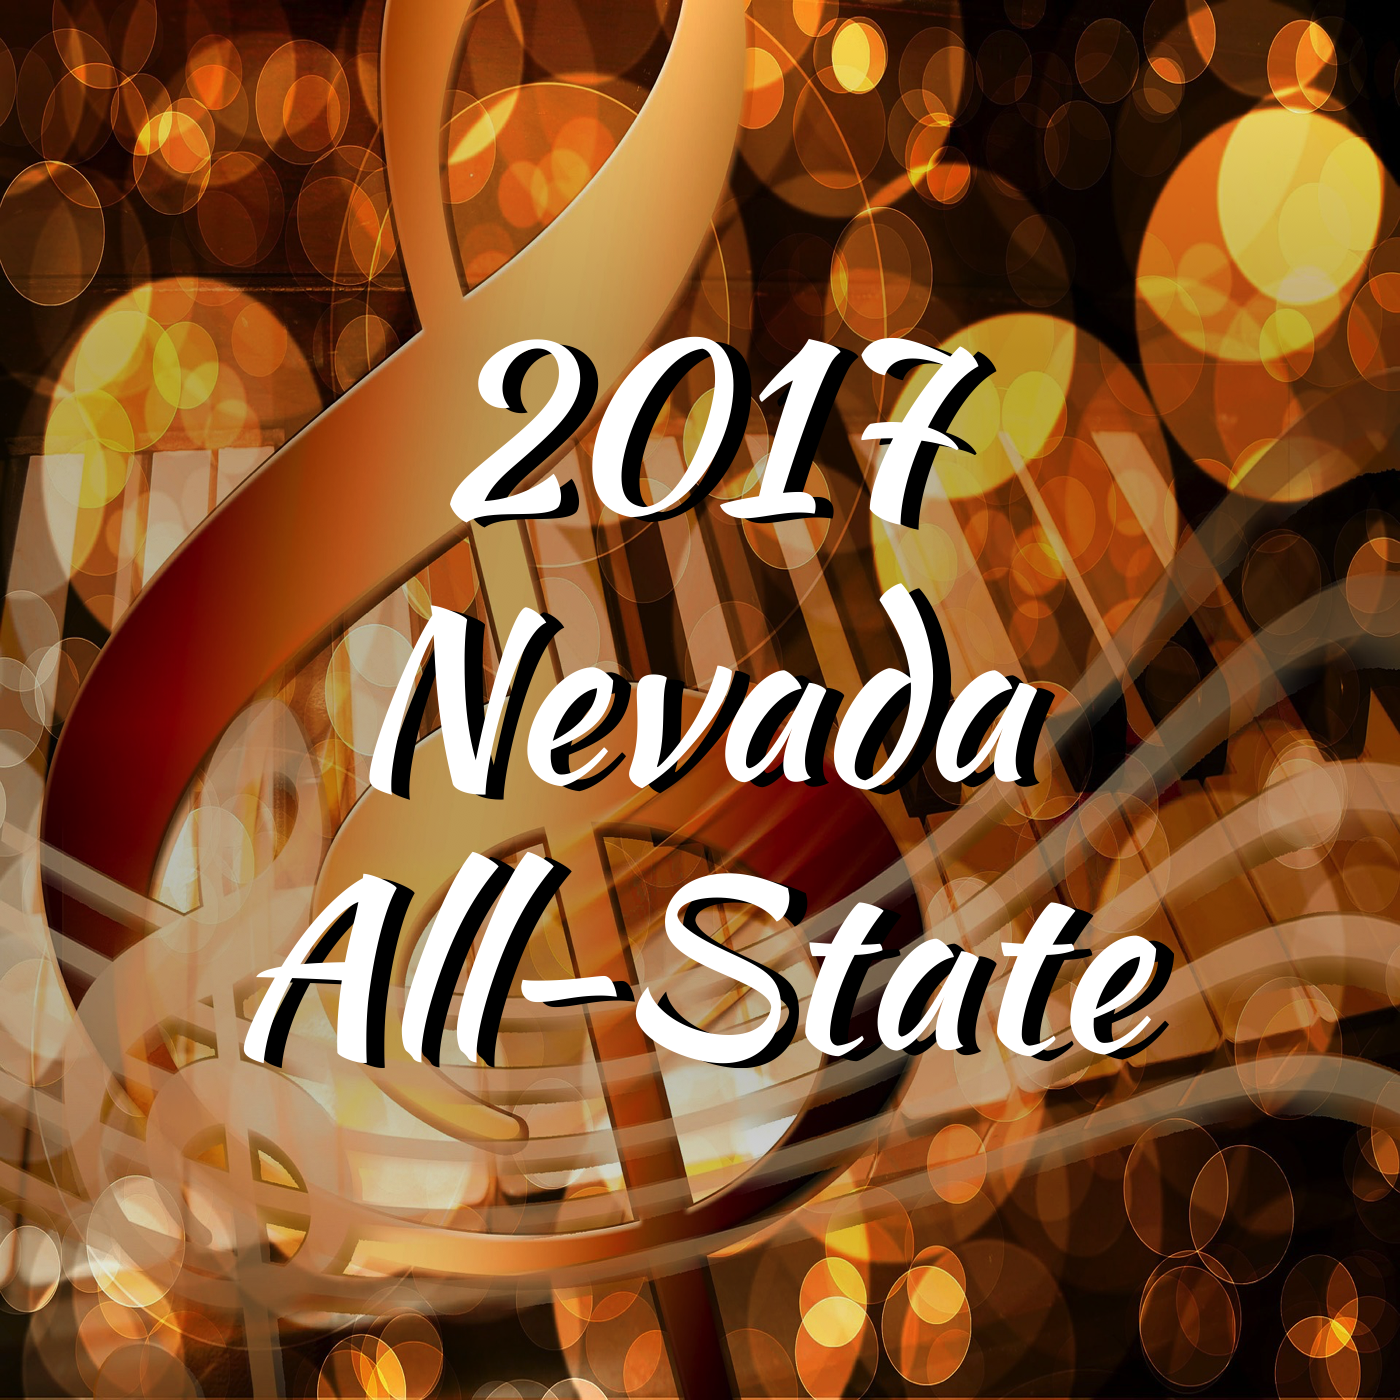 2017 Nevada All-State Music Conference